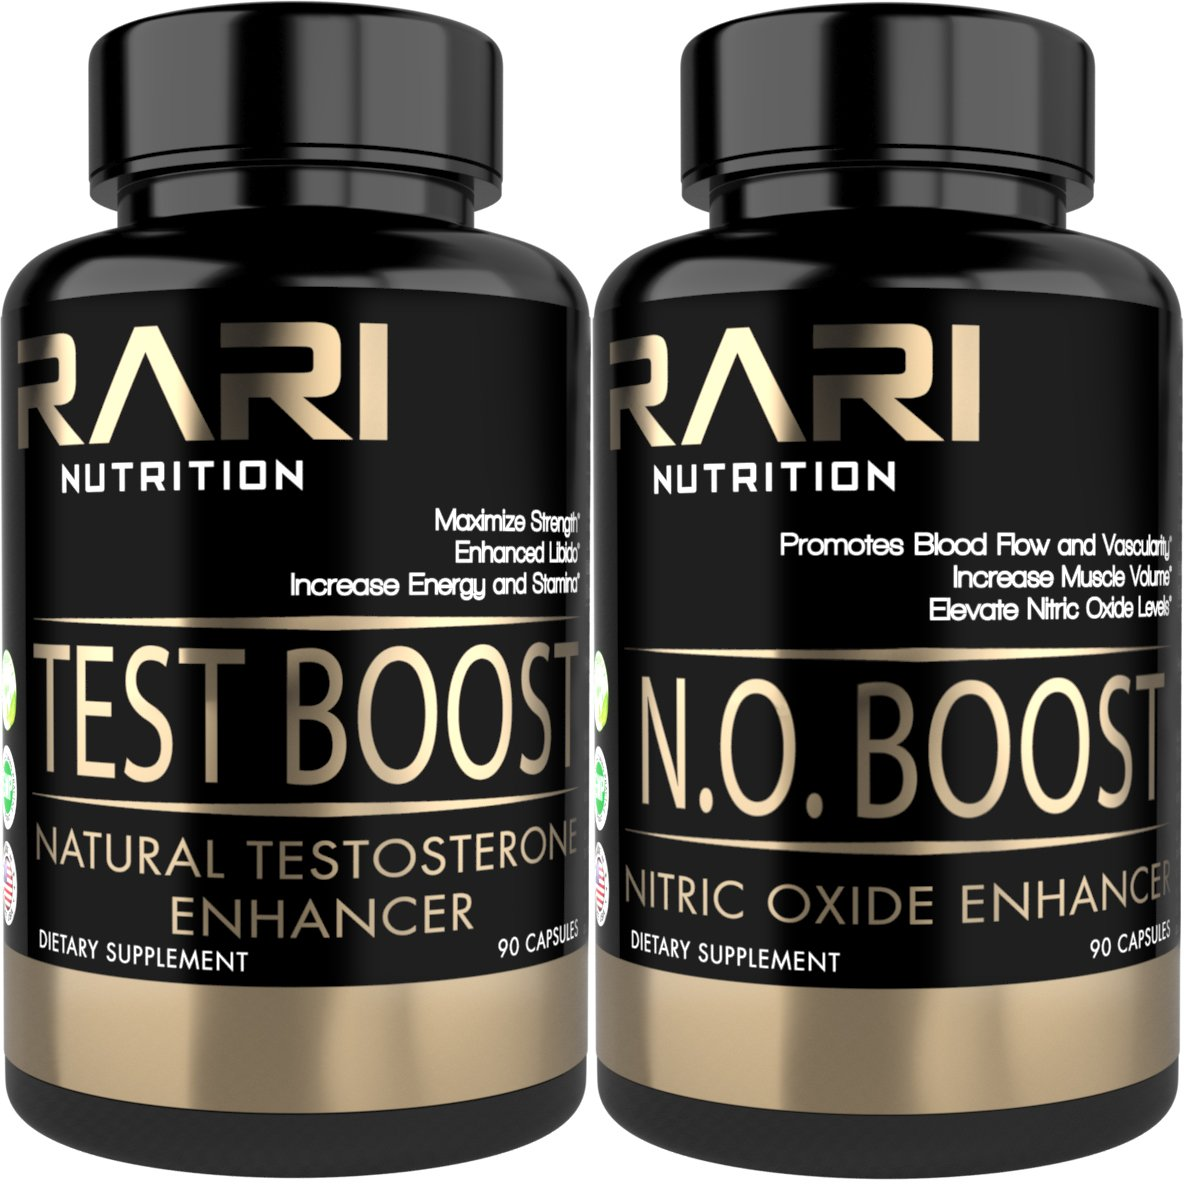 RARI Nutrition - Test Boost + N.O. Boost Combo Pack - 100% Natural Testosterone Booster and Nitric Oxide Enhancing Capsules for Muscle Size, Strength, and Increased Libido - 30 Serving Bottles